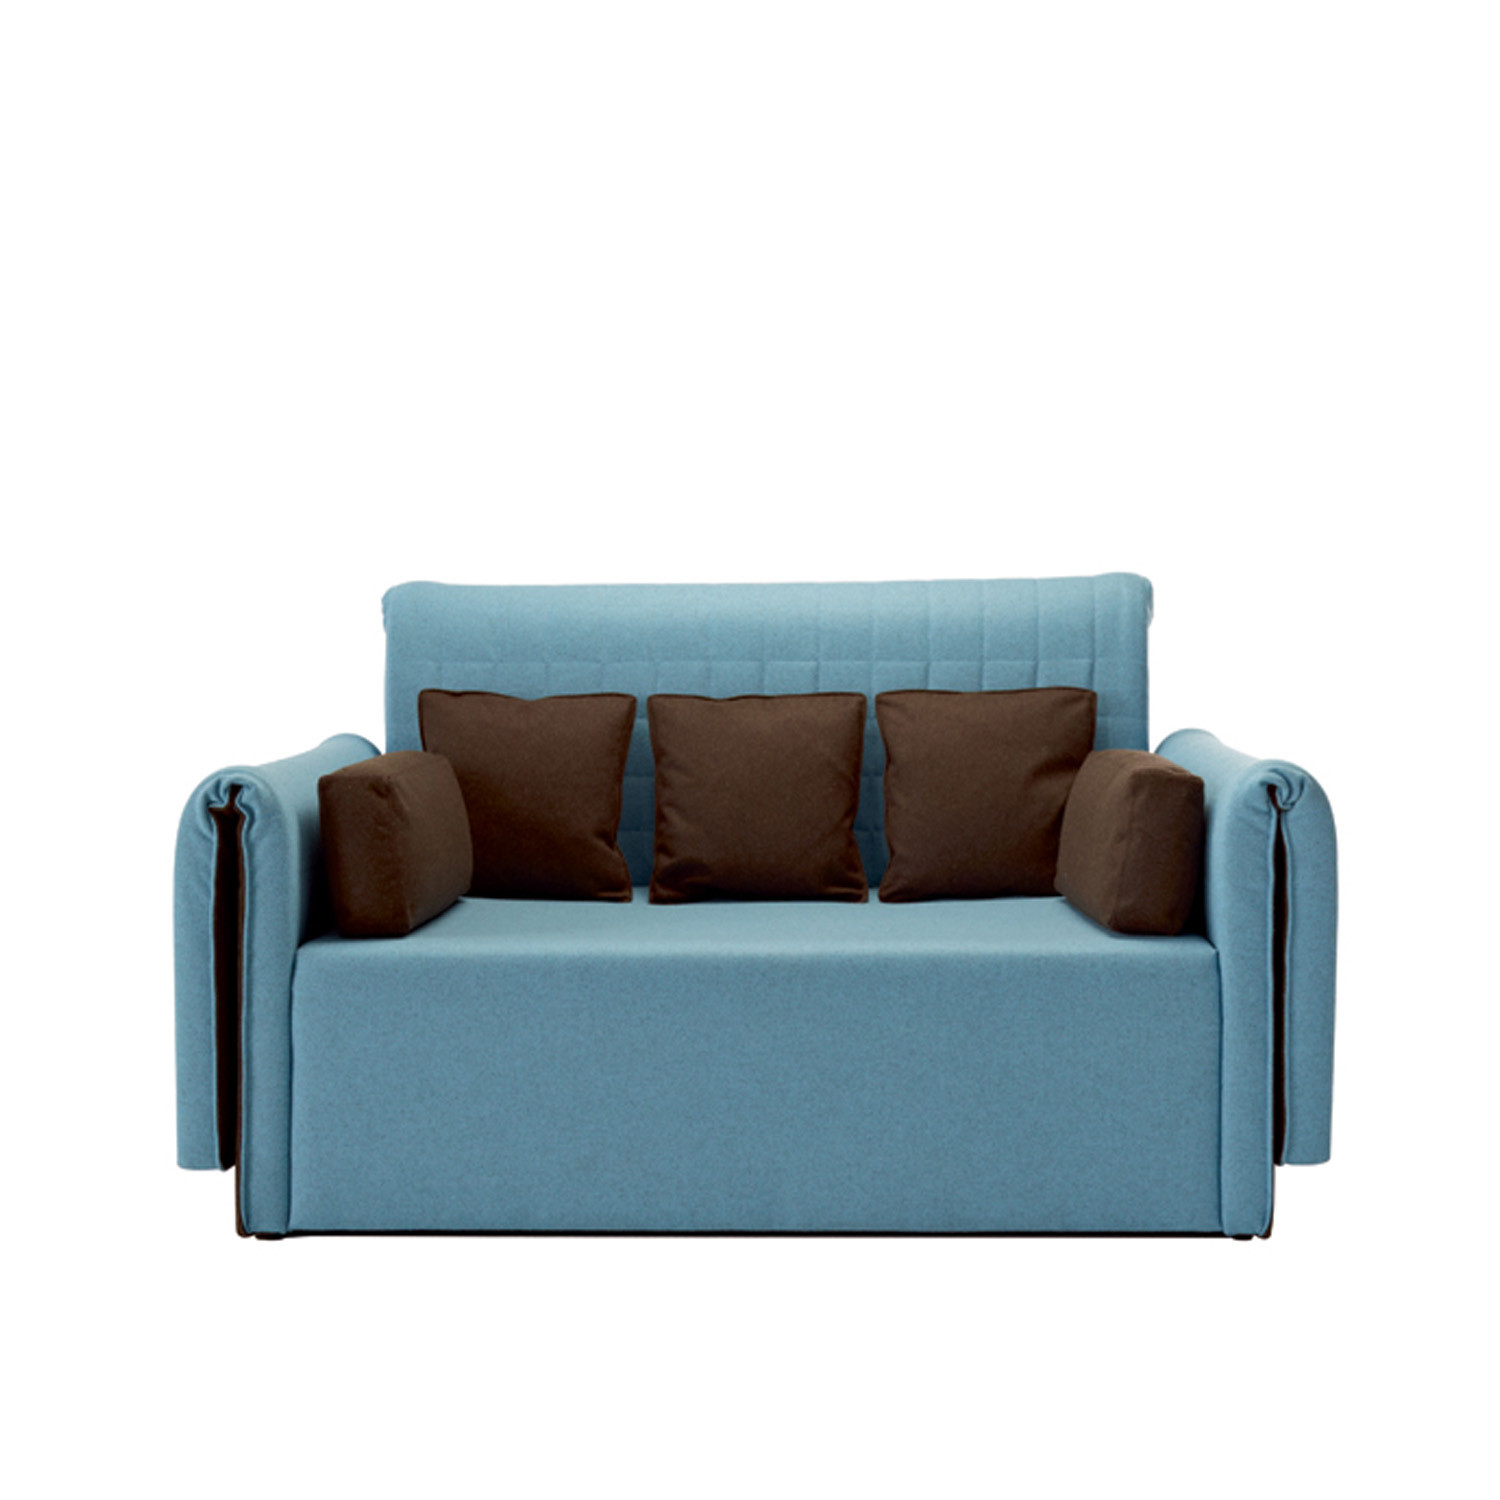 Marea High Back Sofa With Sides Folded